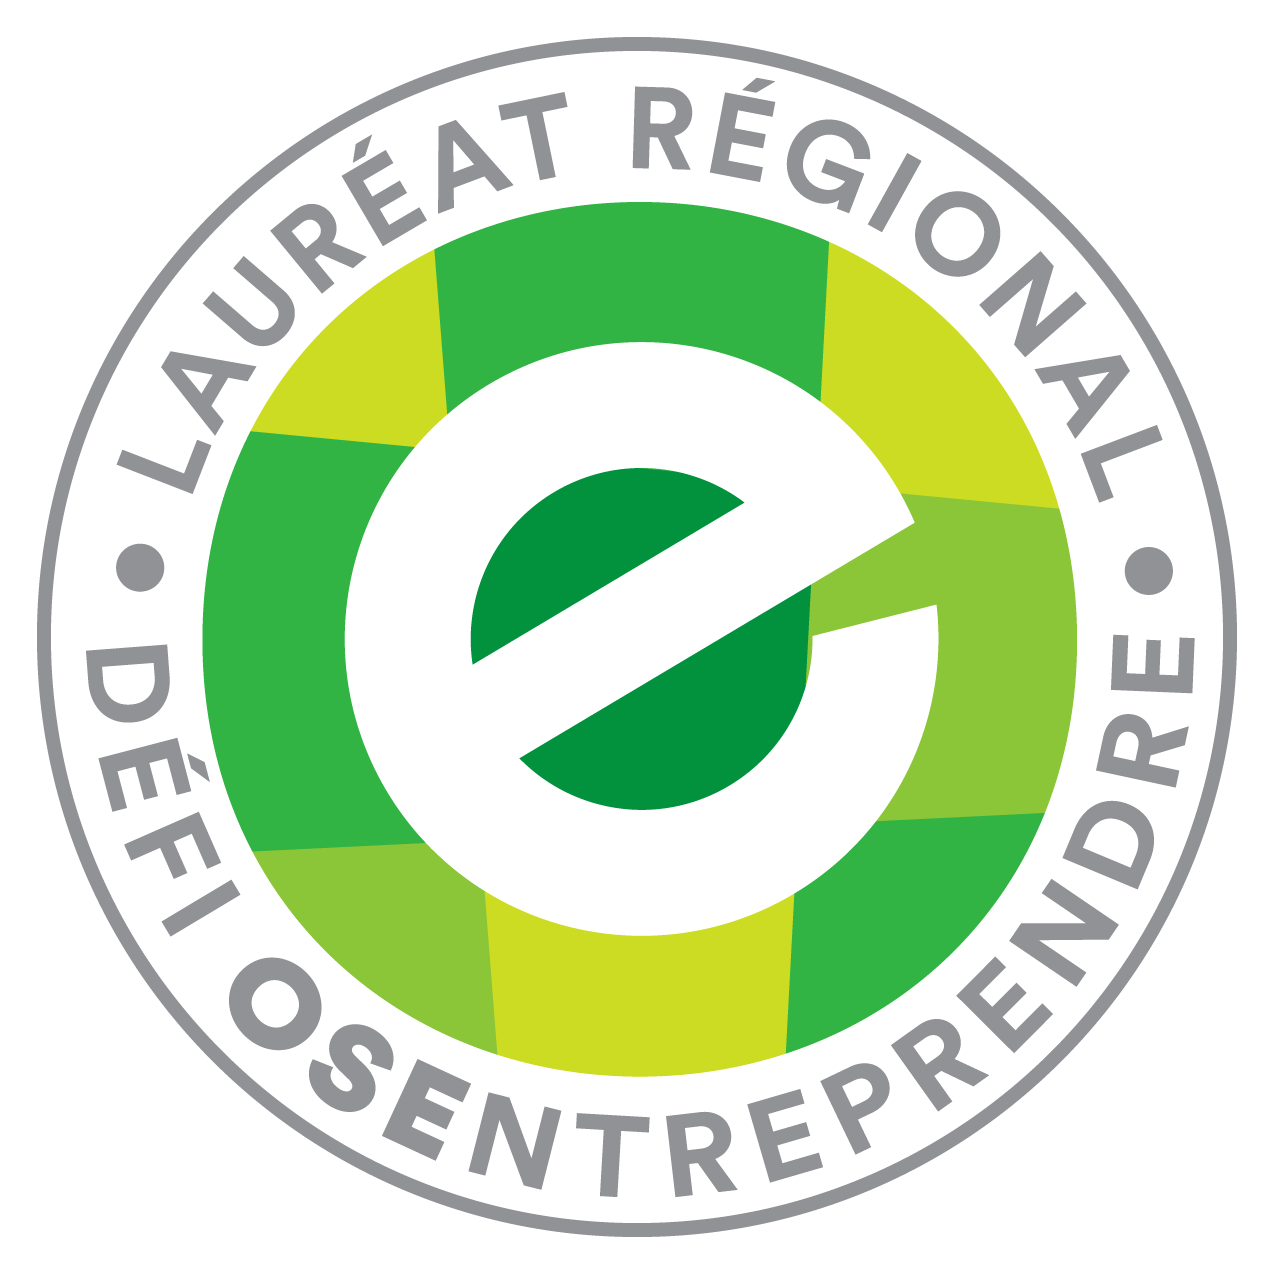 laureat_ose_regional_coul.png